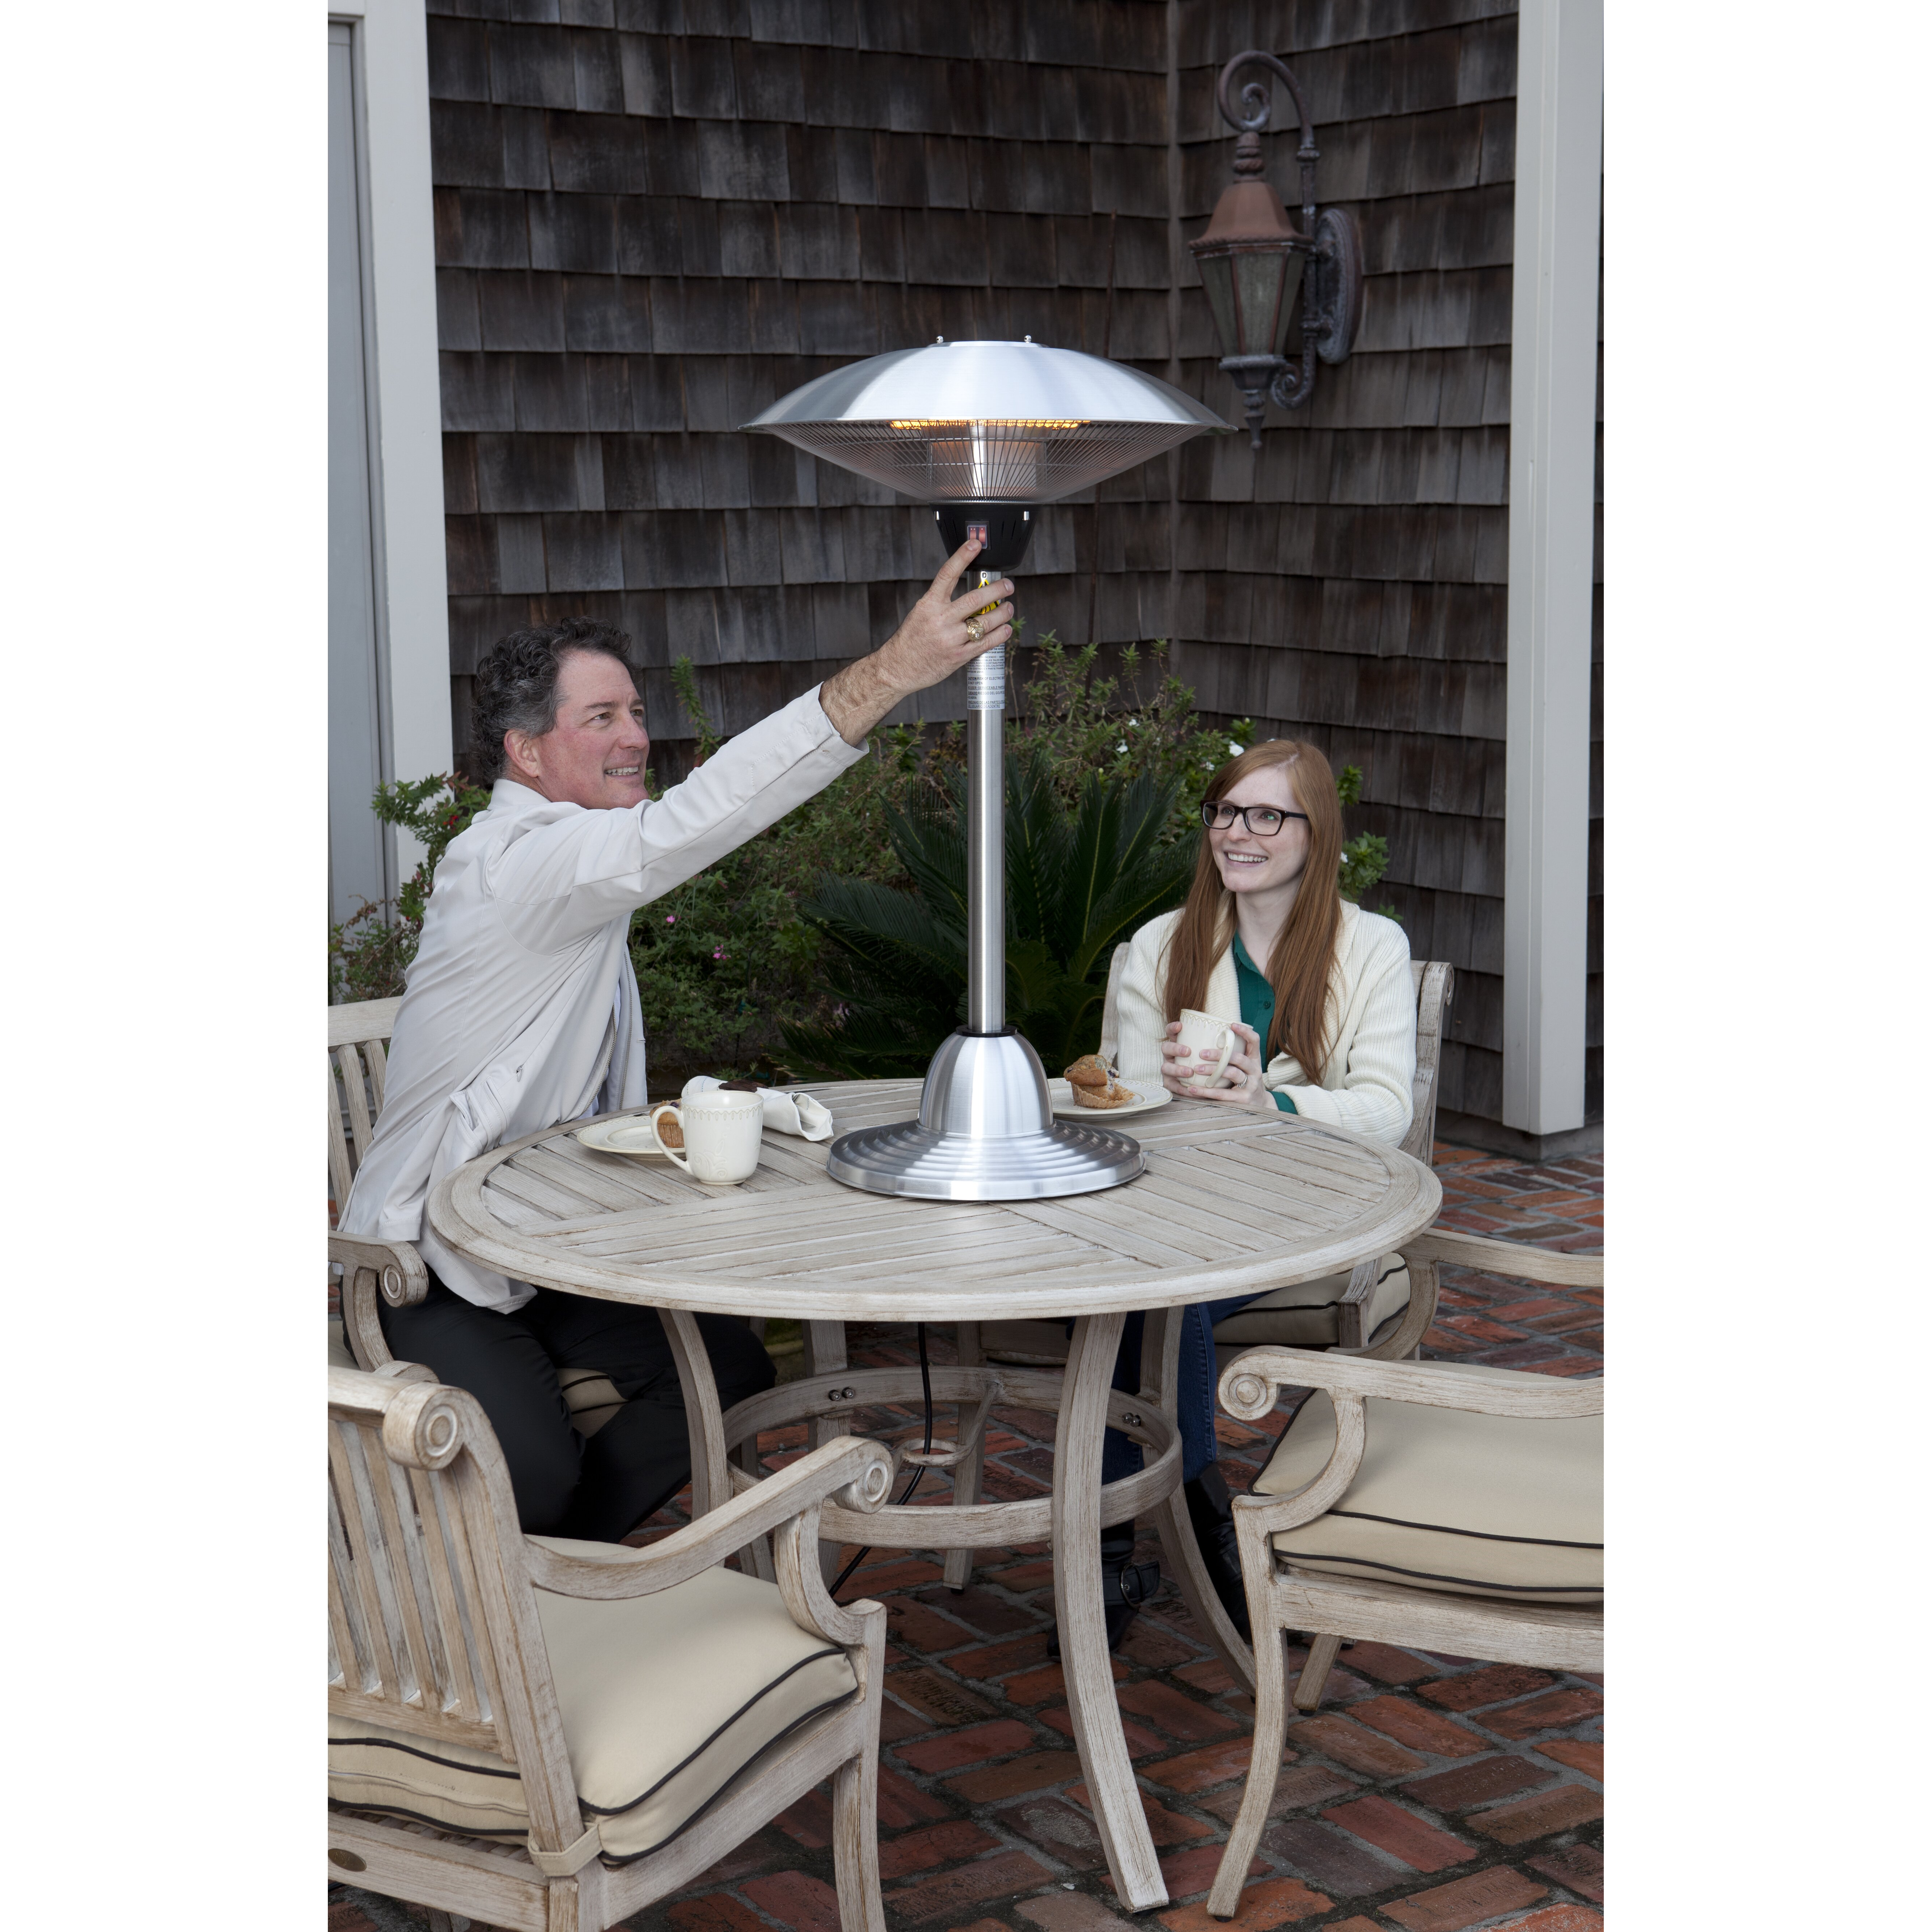 Fire Sense Stainless Steel Tabletop Electric Halogen Patio Heater